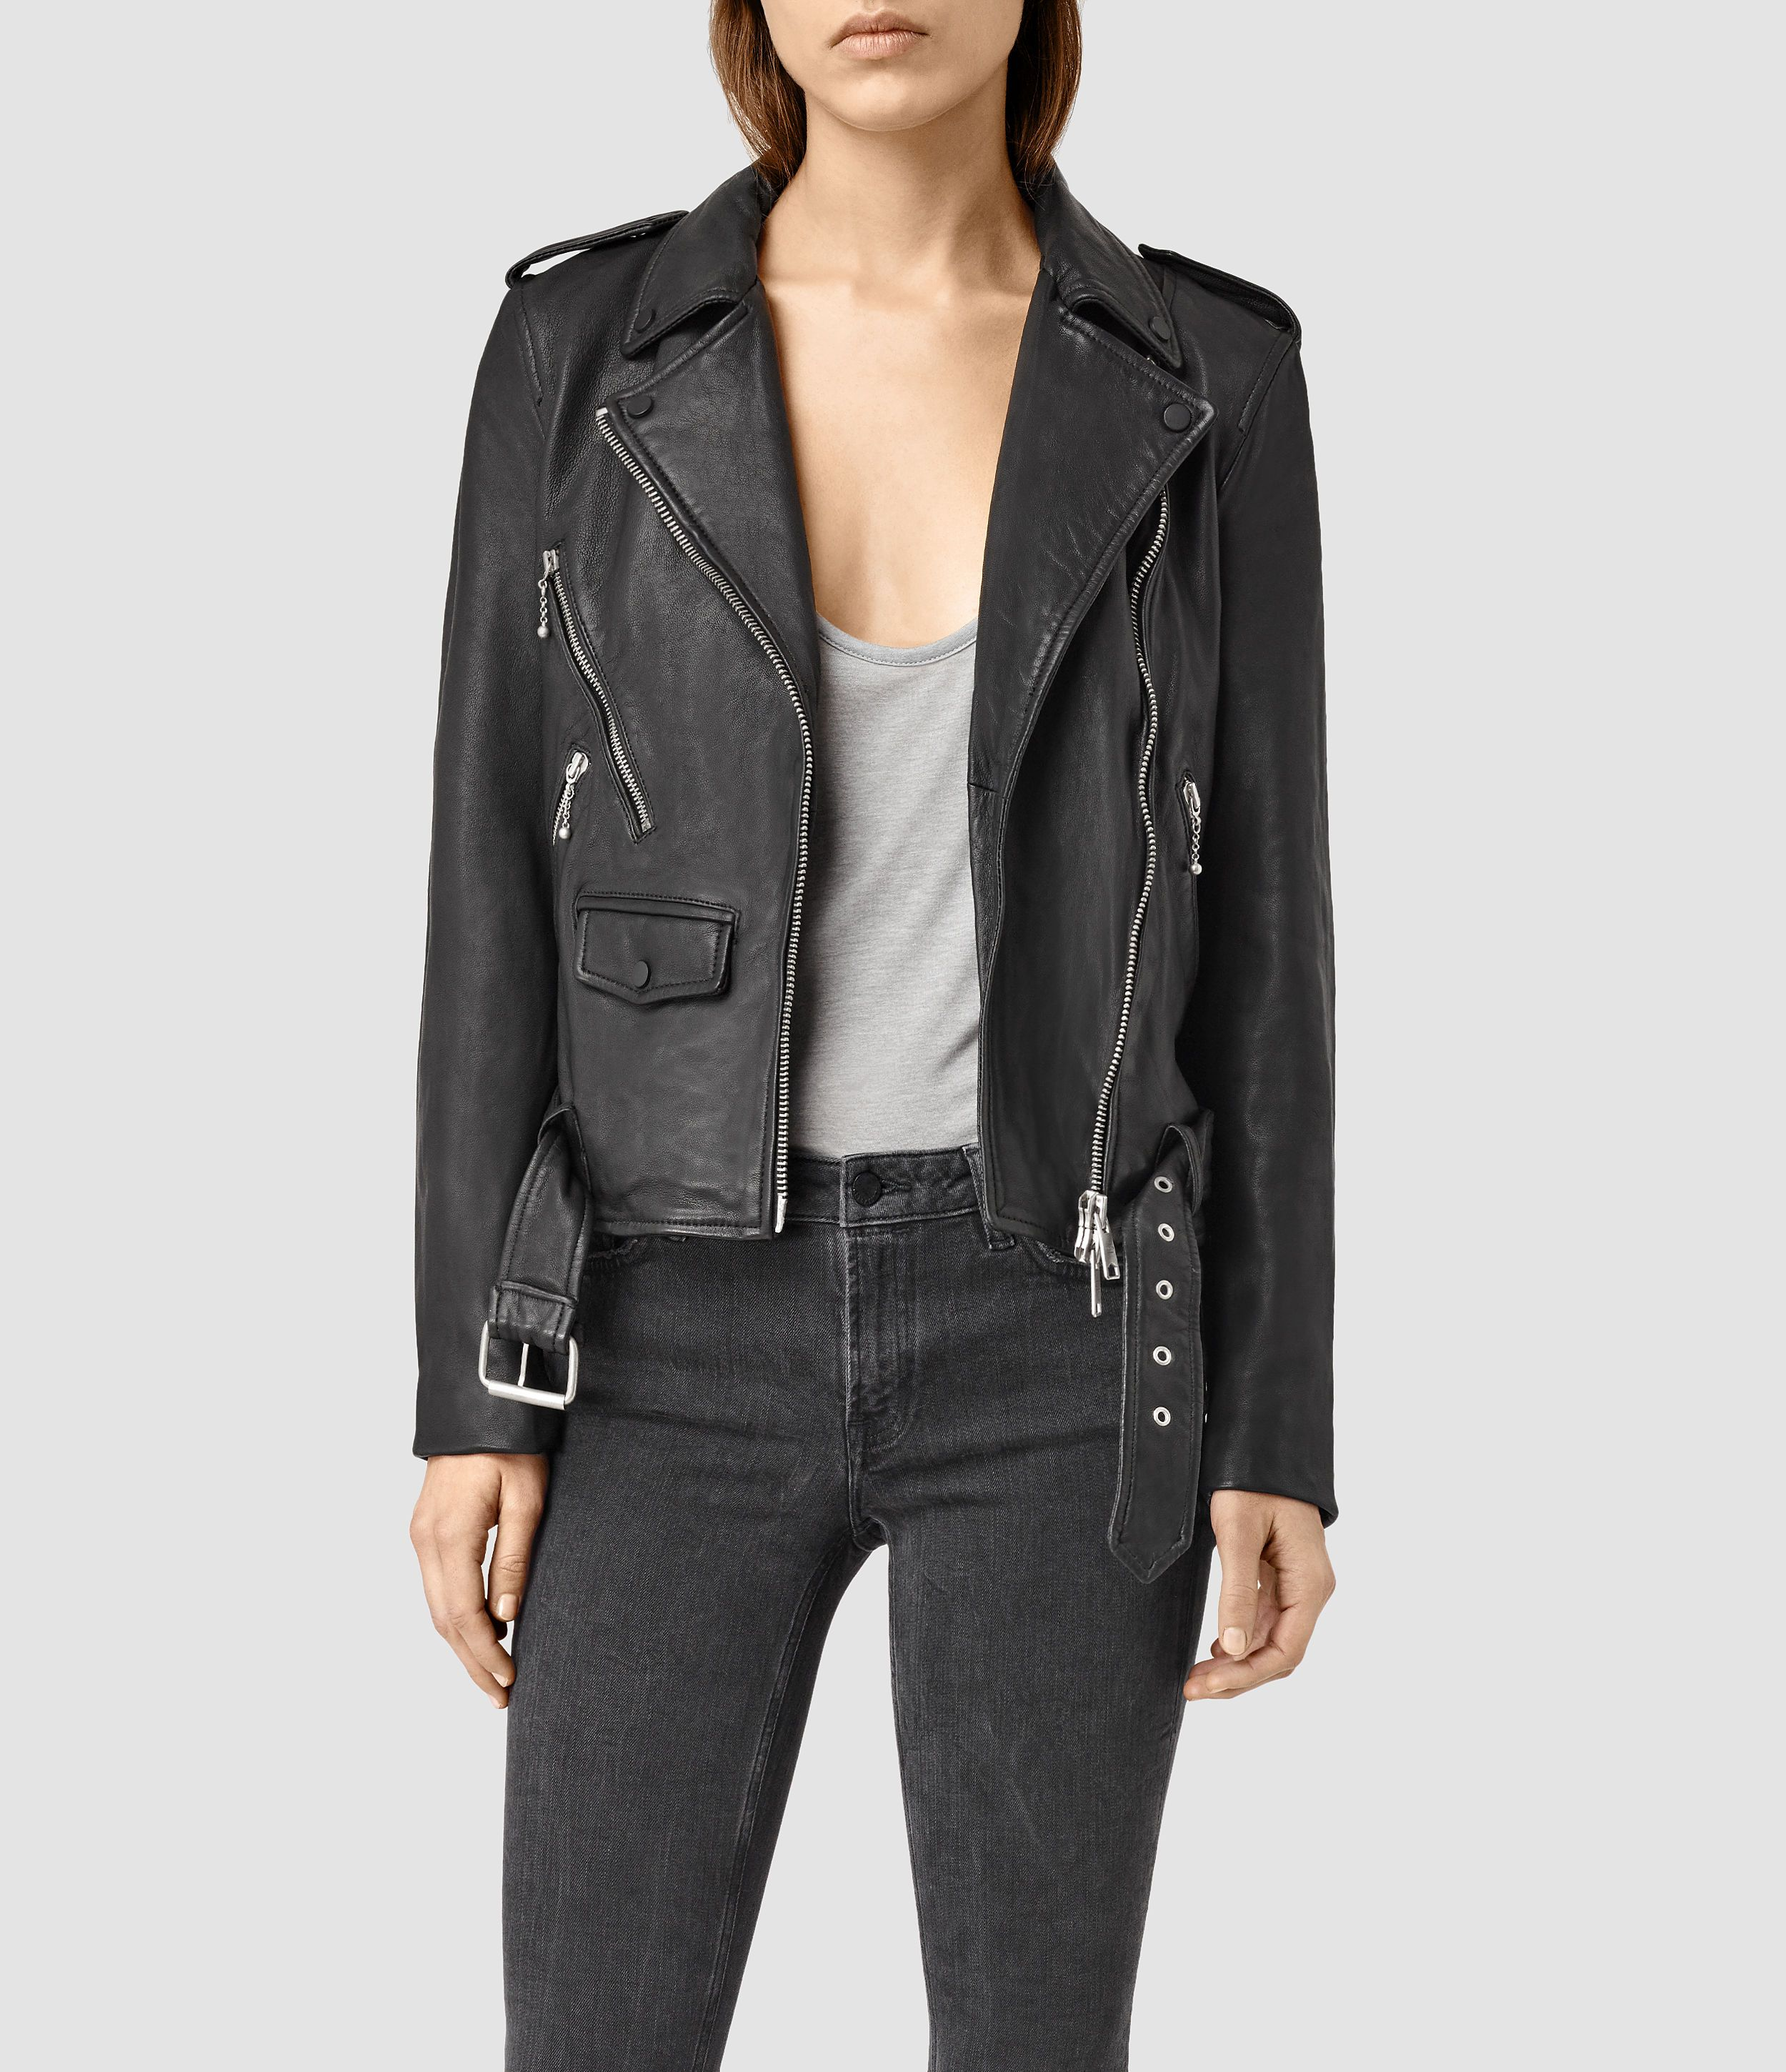 A classicly styled biker jacket, made from cow leather